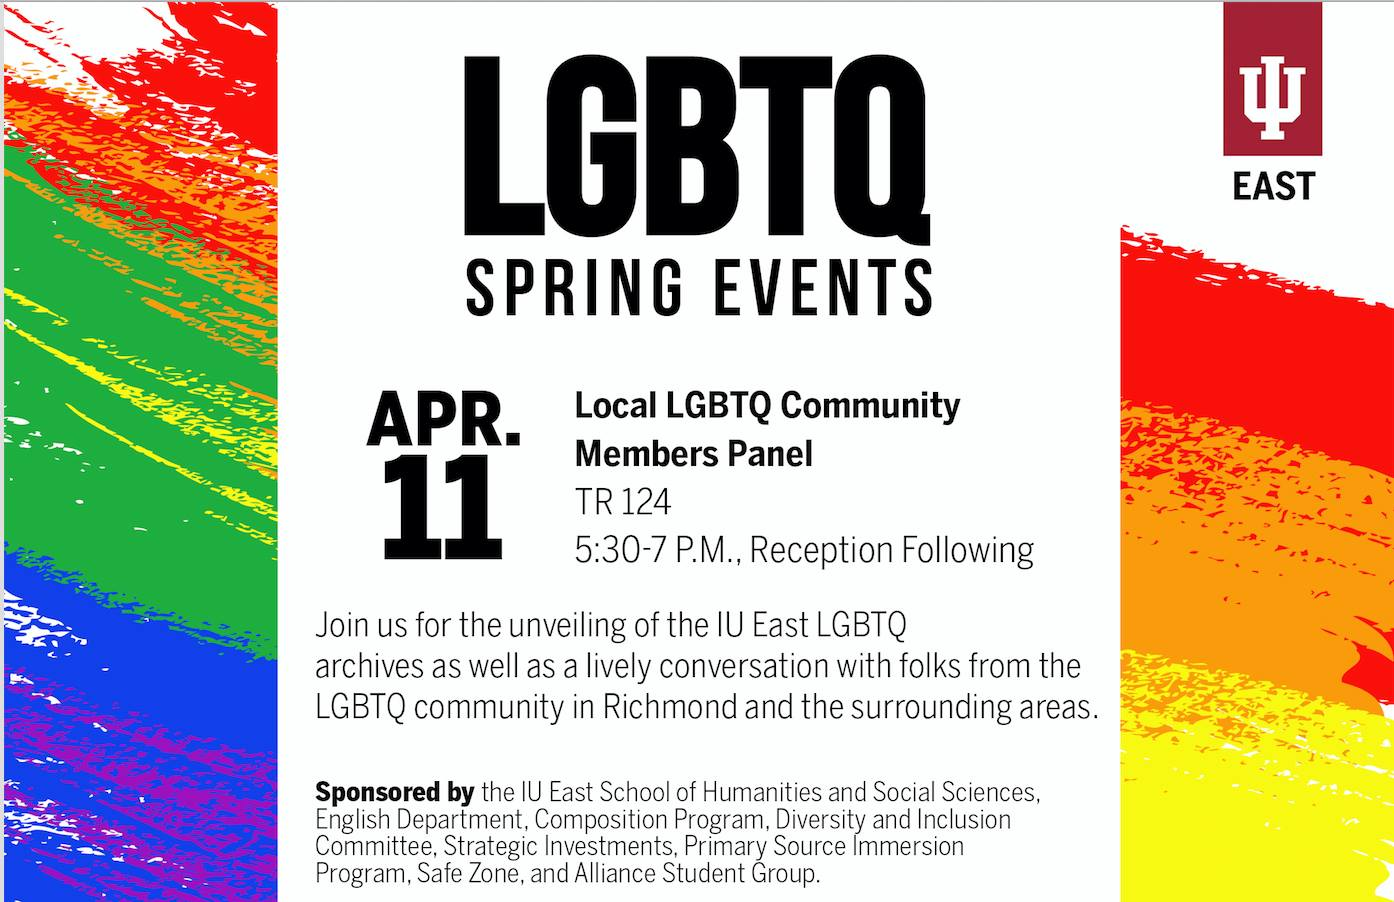 Image of the Local LGBTQ Community Members Panel for April 11, 2019. Flier features rainbow colored background and the IU East Logo in the top, right corner. Flier says: Join us for the unveiling of the IU East LGBTQ archives as well as lively conversation with folks from the LGBTQ community in Richmond and the surrounding areas.